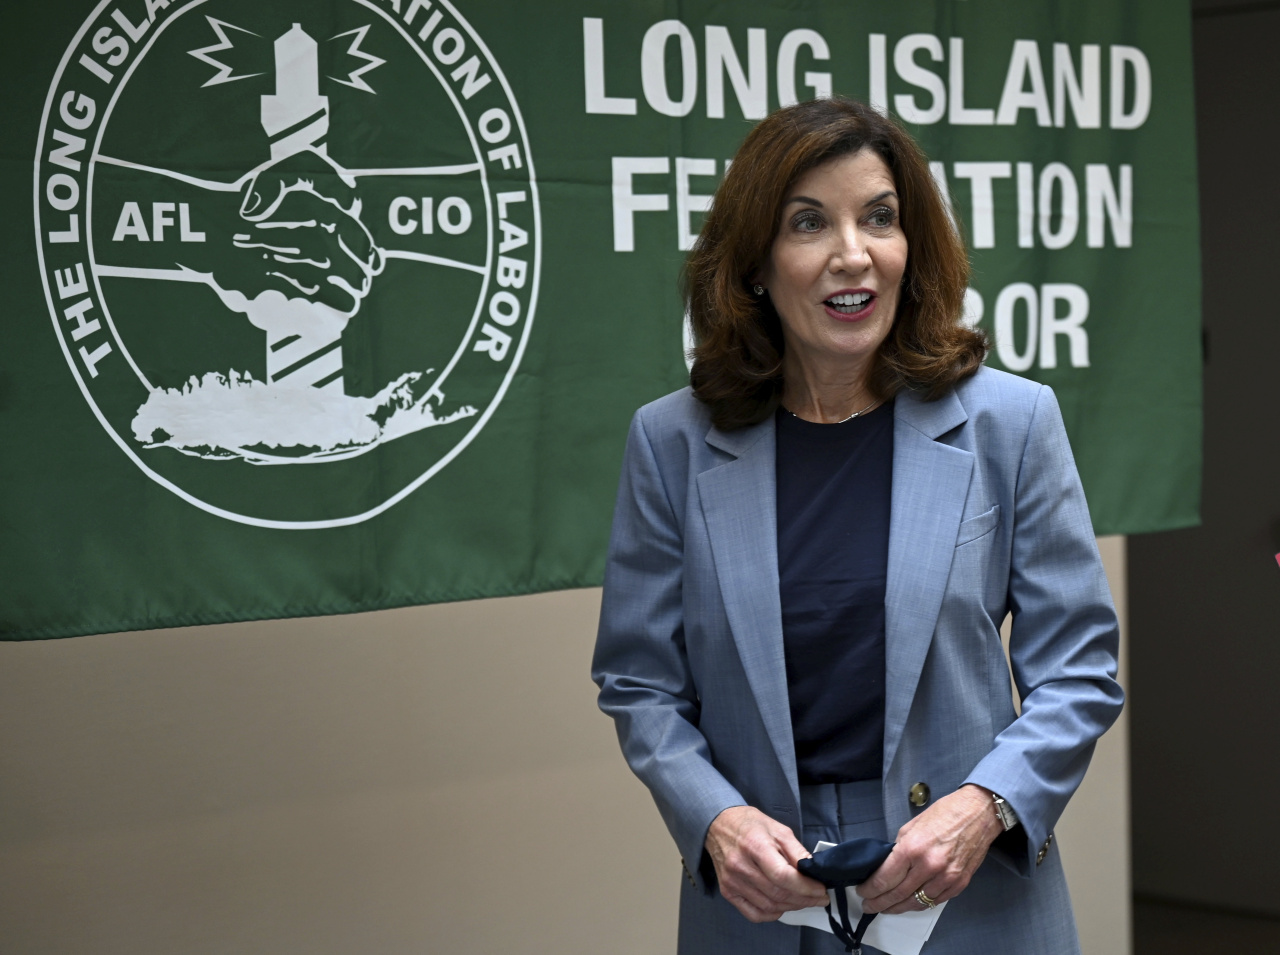 New York Lt. Gov. Kathy Hochul addresses the media after a meeting with Long Island labor leaders in Hauppauge, N.Y., on Friday. (AP)